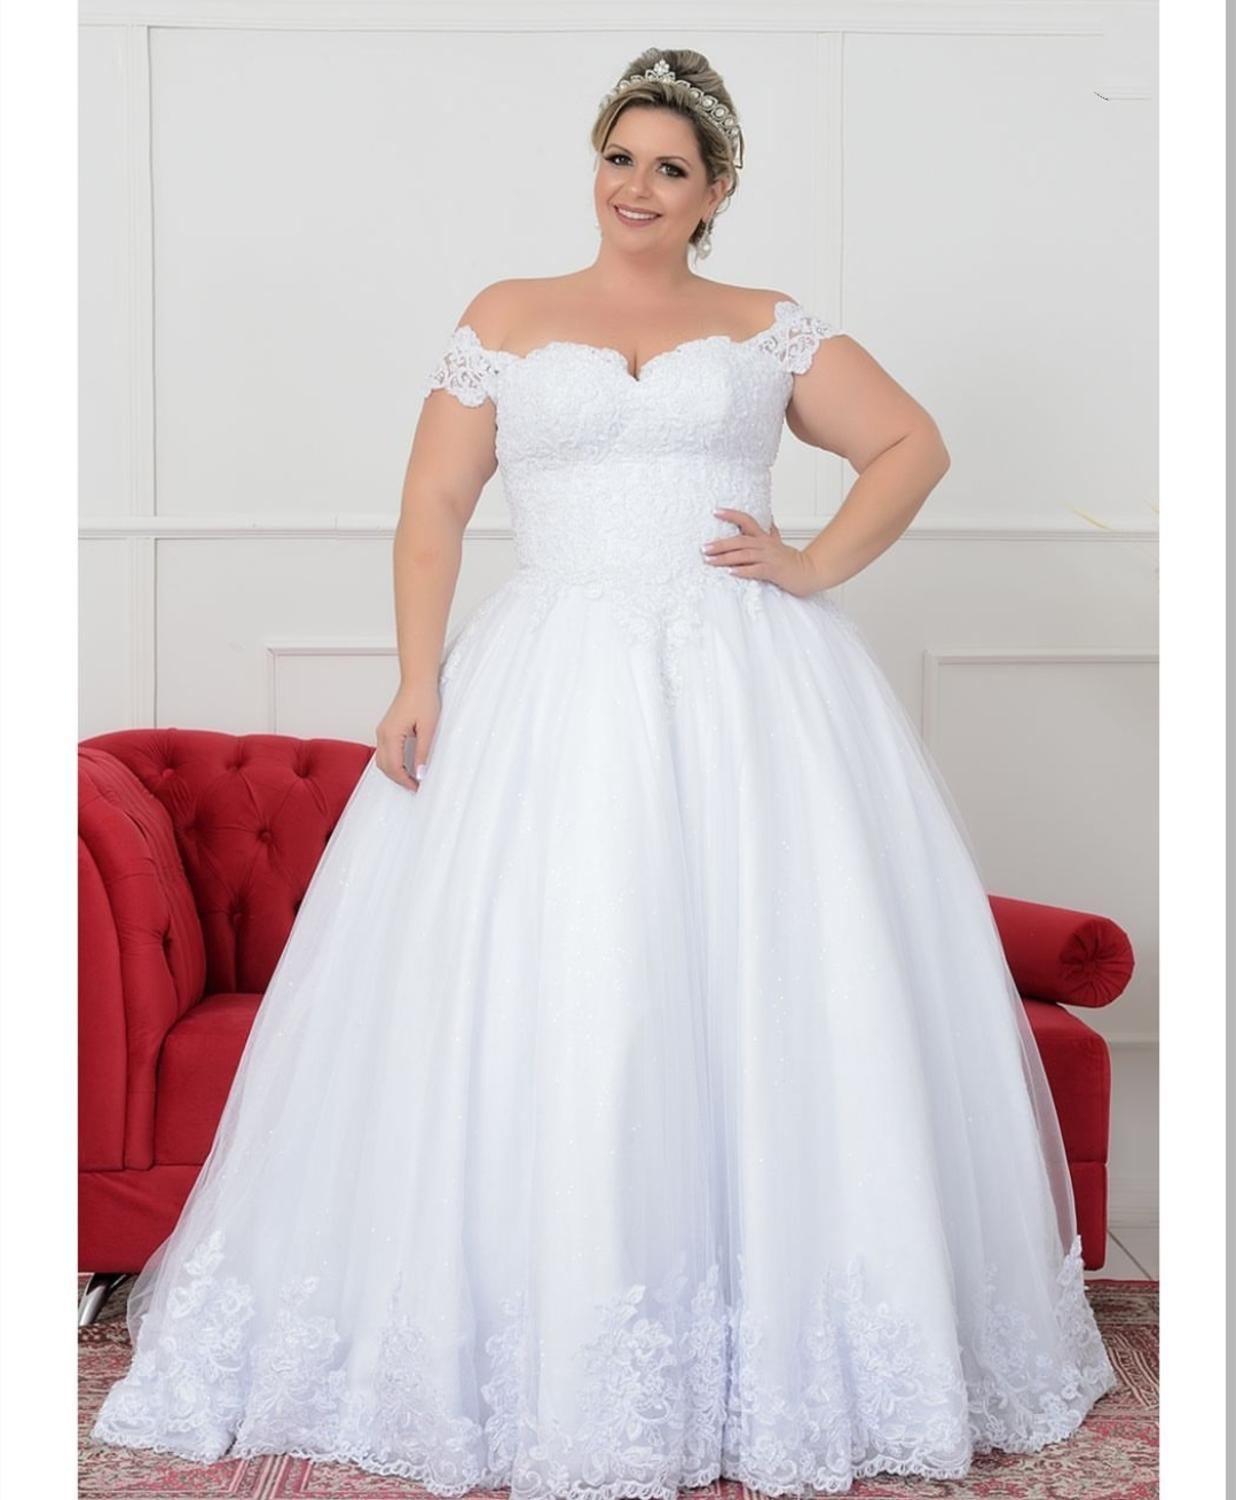 Robe De Mariee Scoop Plus Size Wedding Dress 26w  Short Sleeve Scoop  Large Size With Sleeve For Women  Lace Appliqued  Size 24